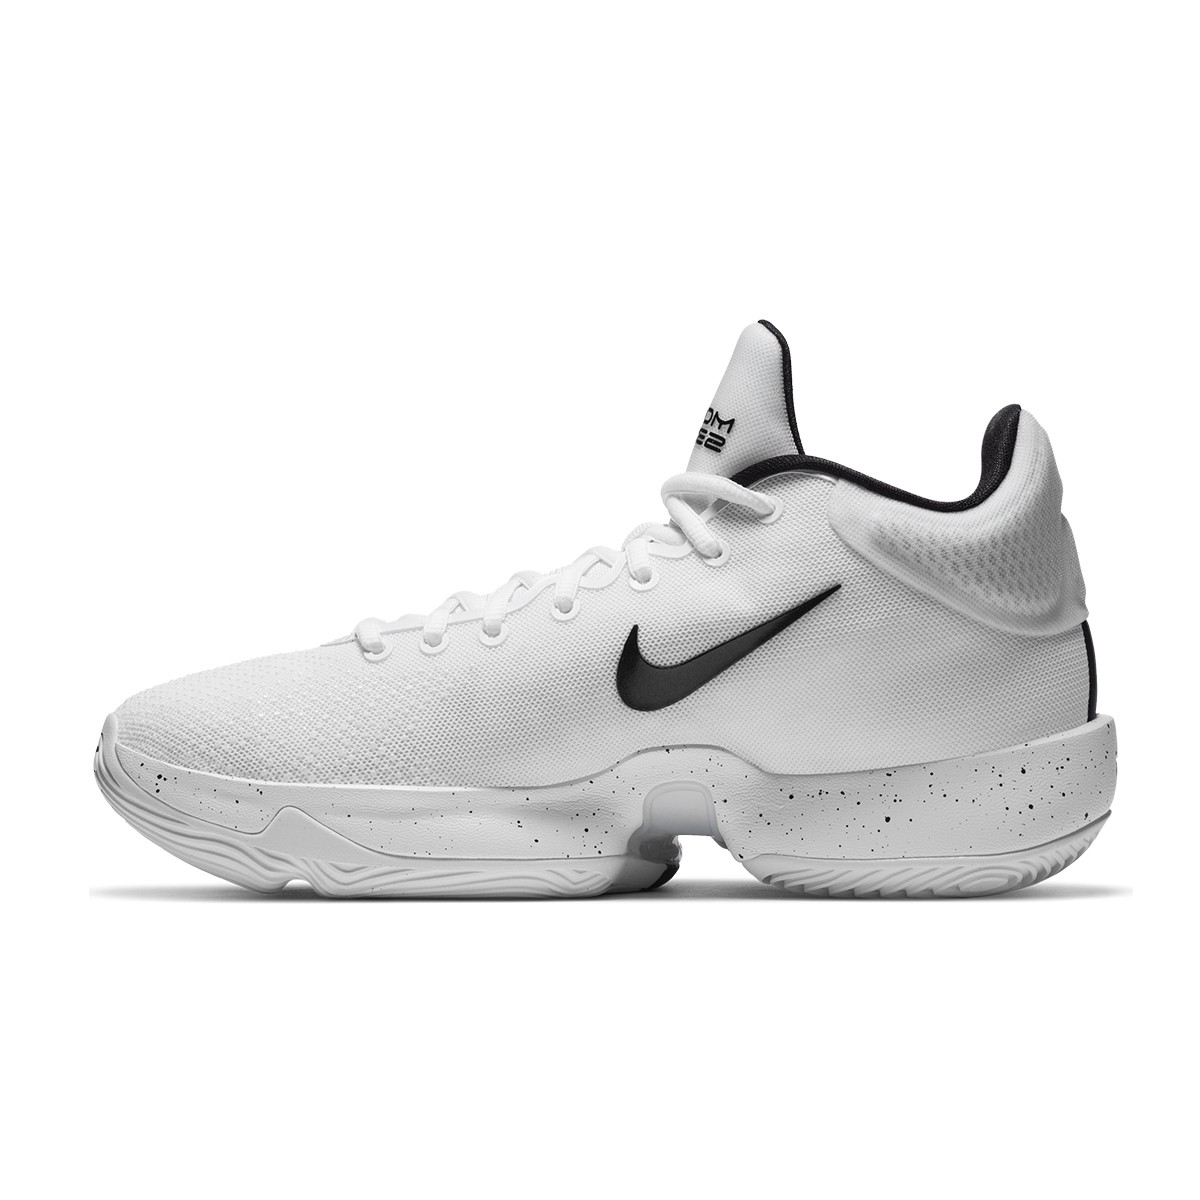 Nike Zoom Rize 2 TB 'White'-CT1500-100